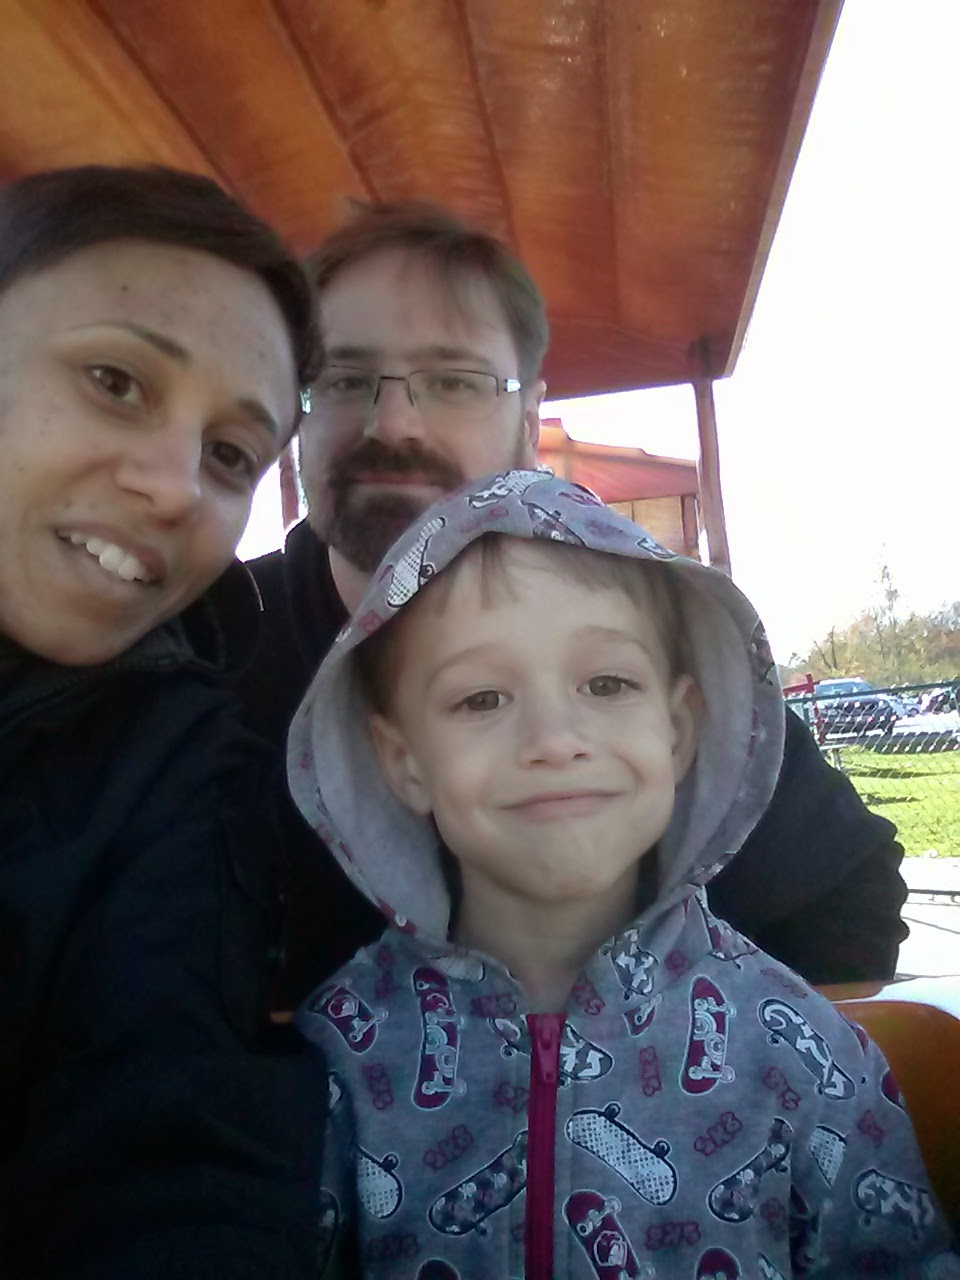 family selfie on Big Apple Colborne train copyright 2014 OneQuarterMama.ca